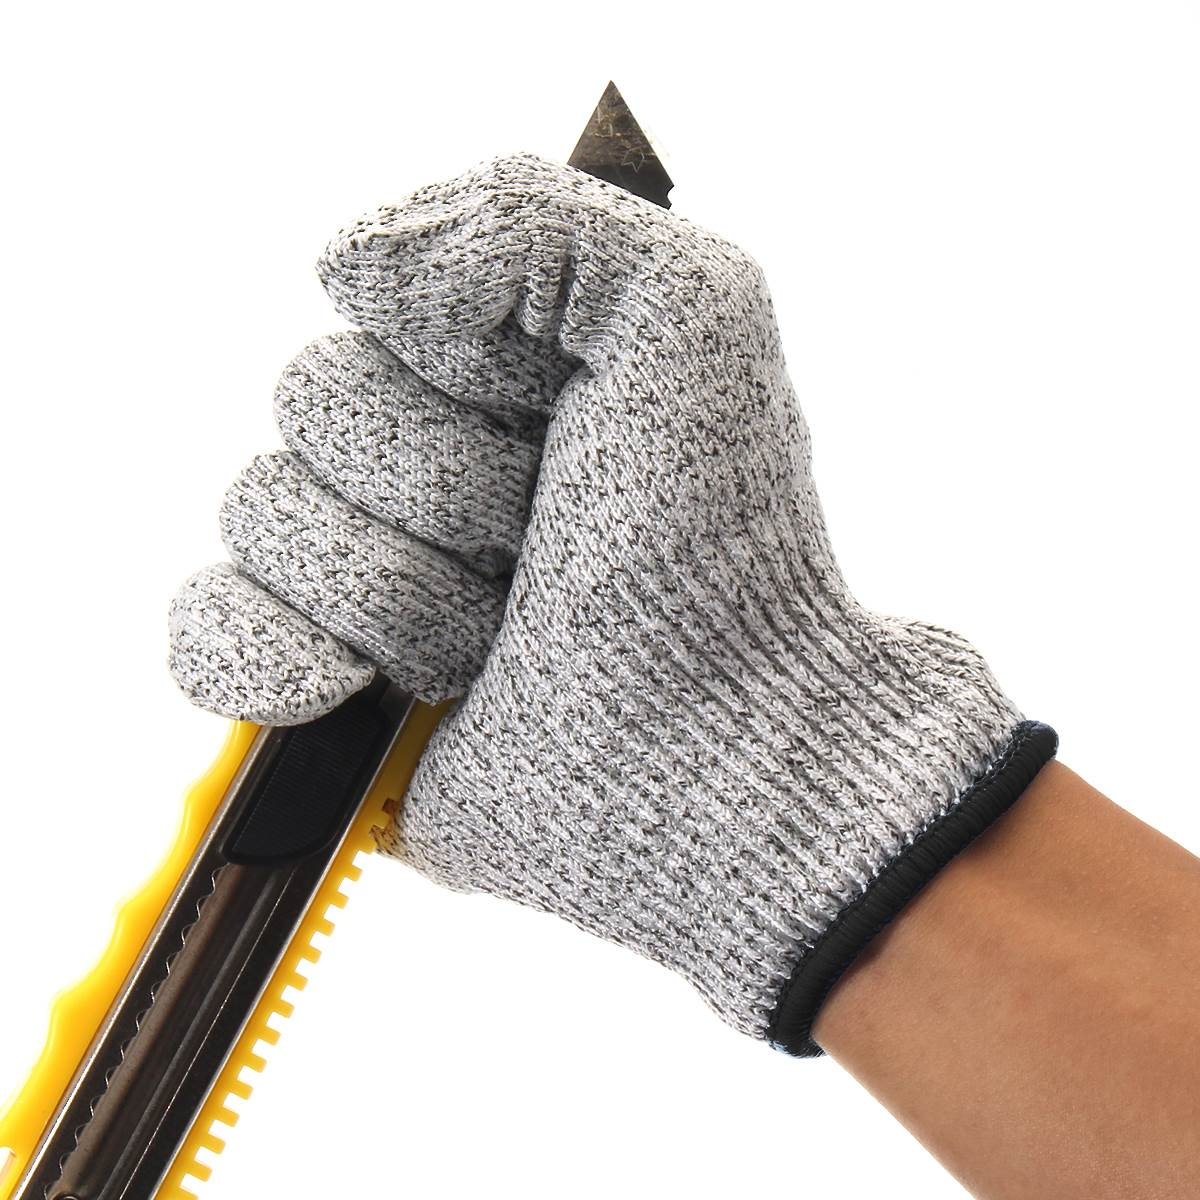 Safurance Safety Cut Proof Stab Resistant Stainless Steel Wire Metal Mesh Butcher Gloves Cut-Resistant Working Safety 1pcs safety gloves cut proof stab resistant stainless steel wire metal mesh butcher anti knife